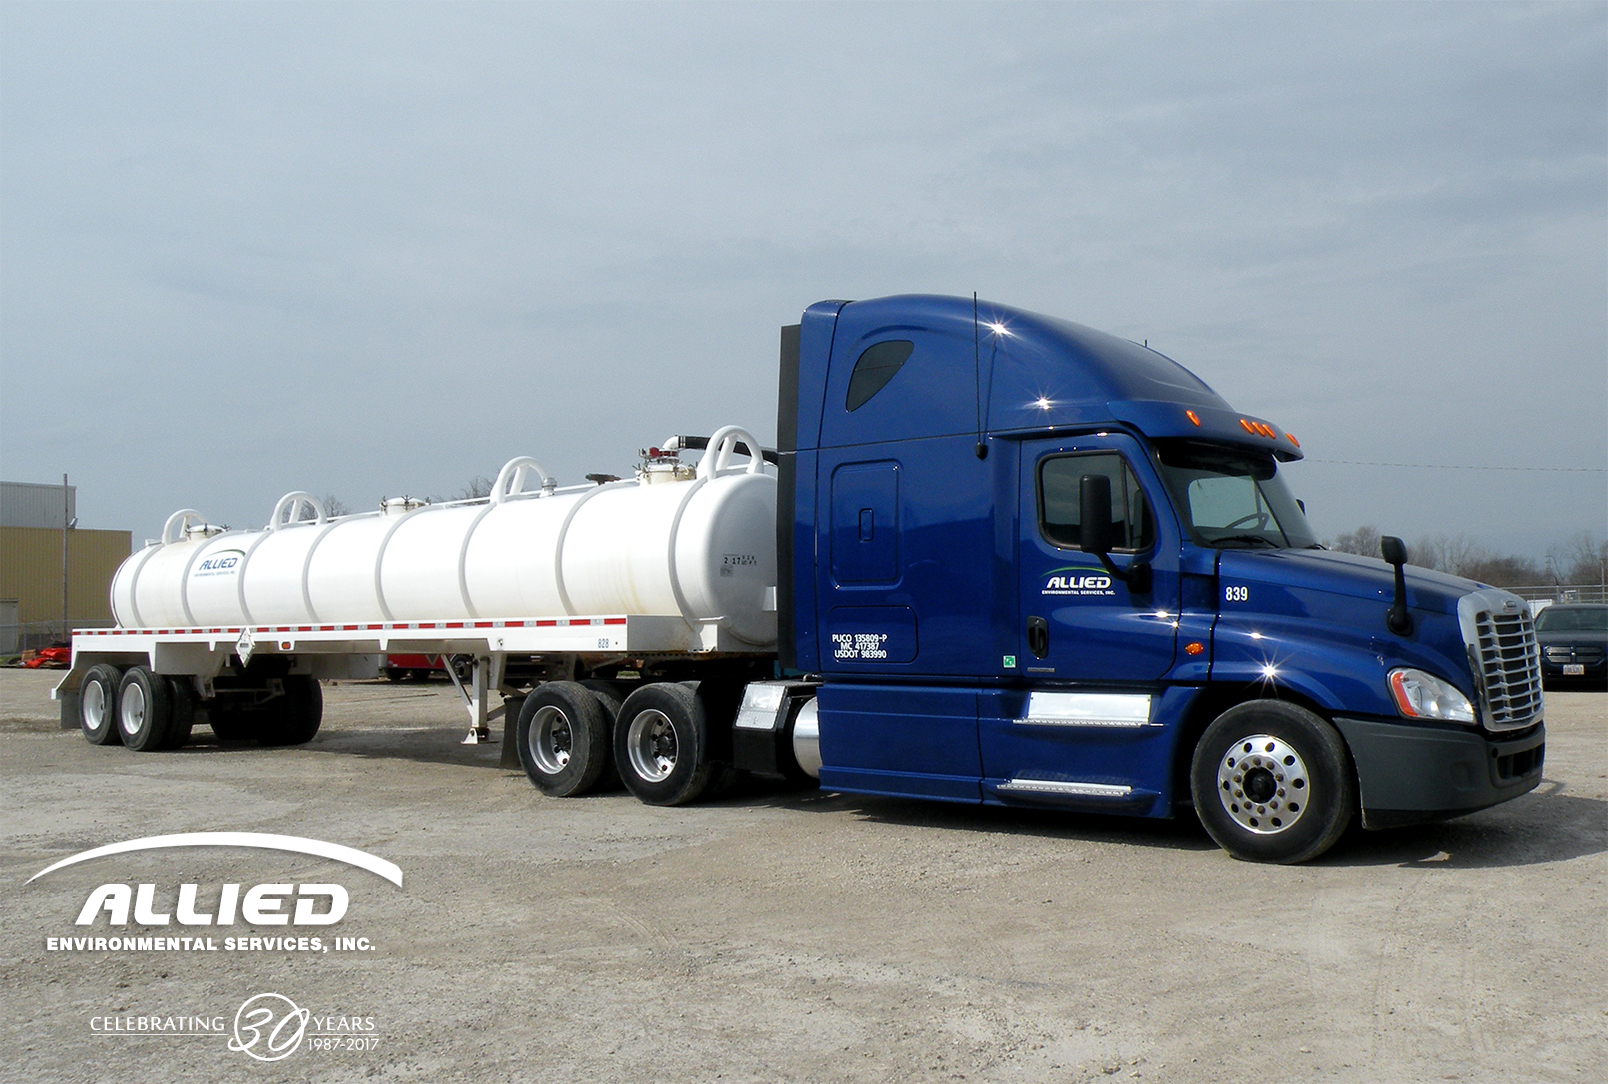 Allied Expands HazMat Transport Fleet for 2017